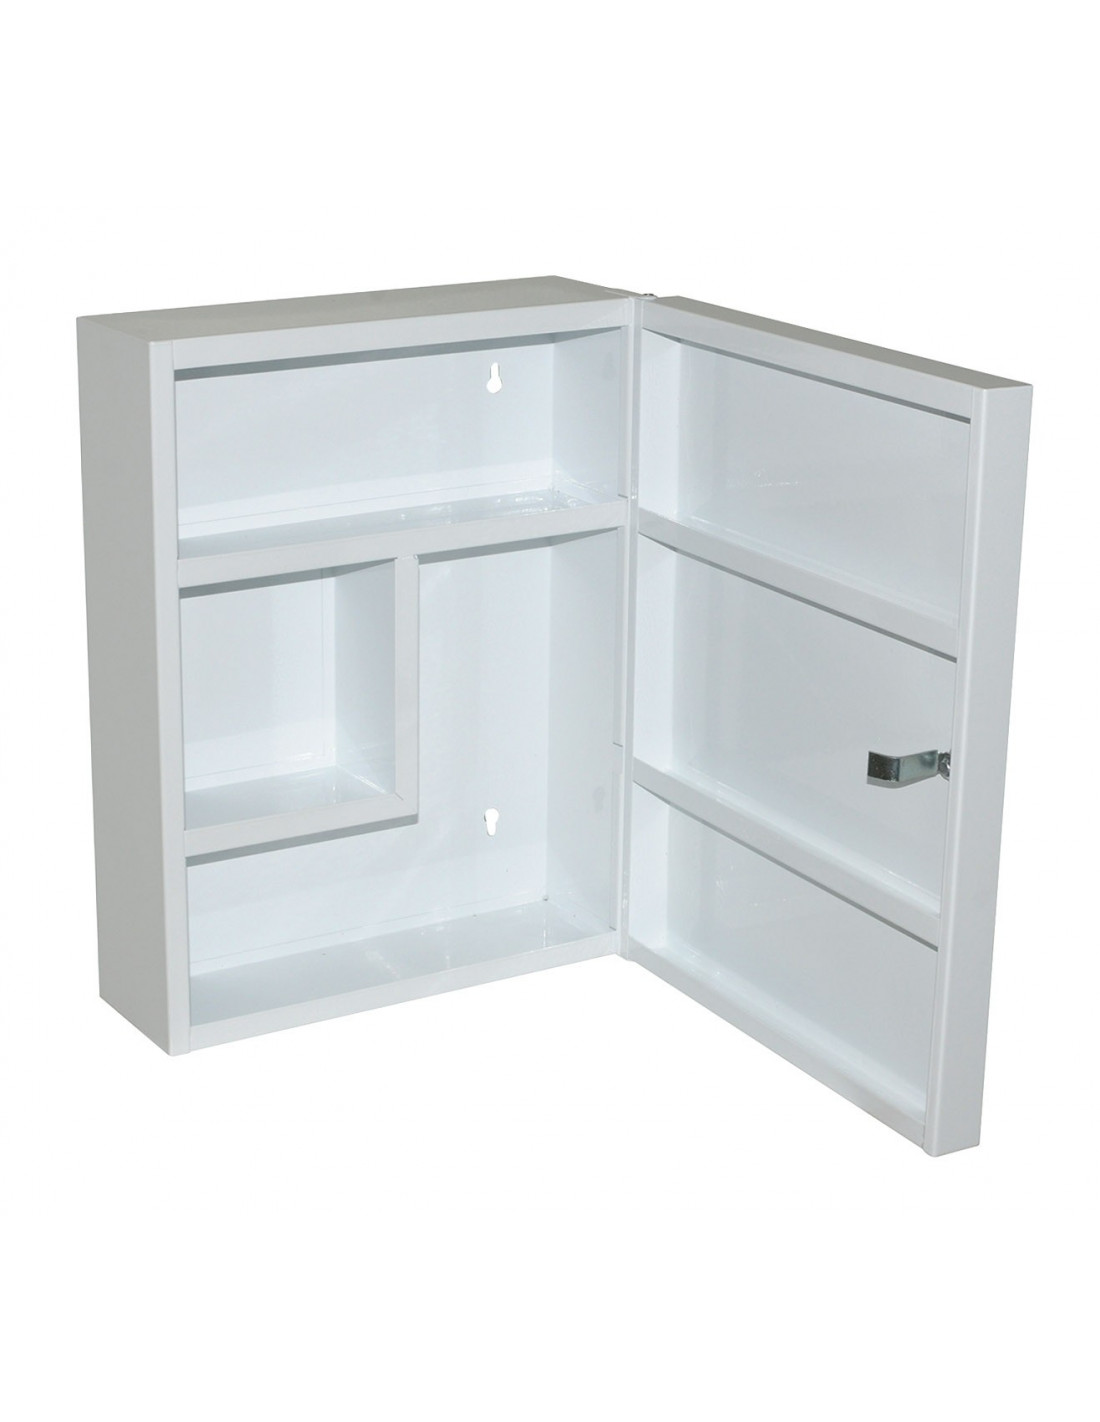 galedo armoire pharmacie m tal blanc hyper brico. Black Bedroom Furniture Sets. Home Design Ideas